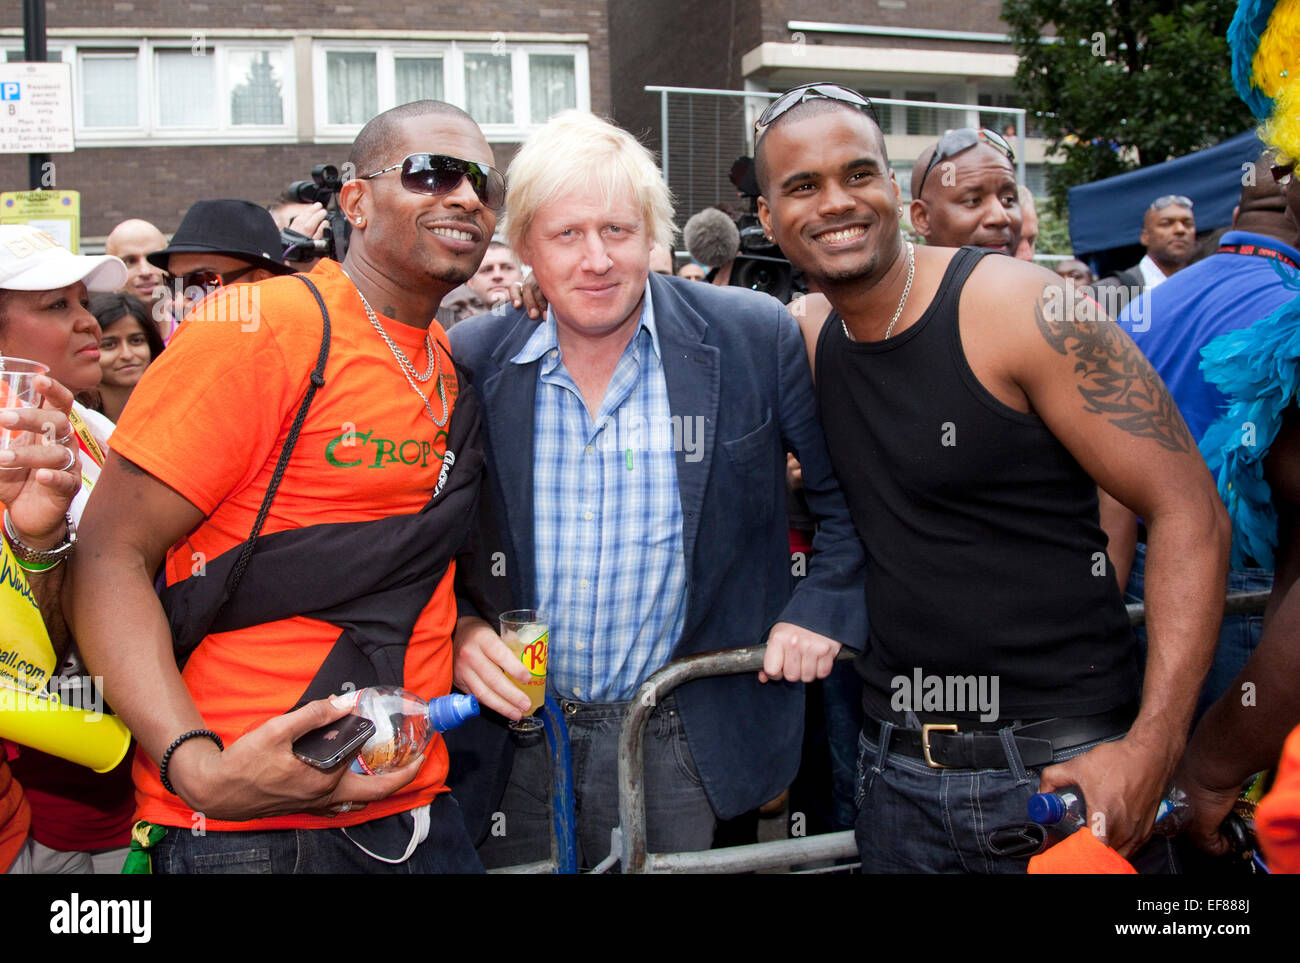 London Mayor Boris Johnson visits the Notting Hill Carnival on Bank Holiday Monday and is greeted enthusiastically - Stock Image